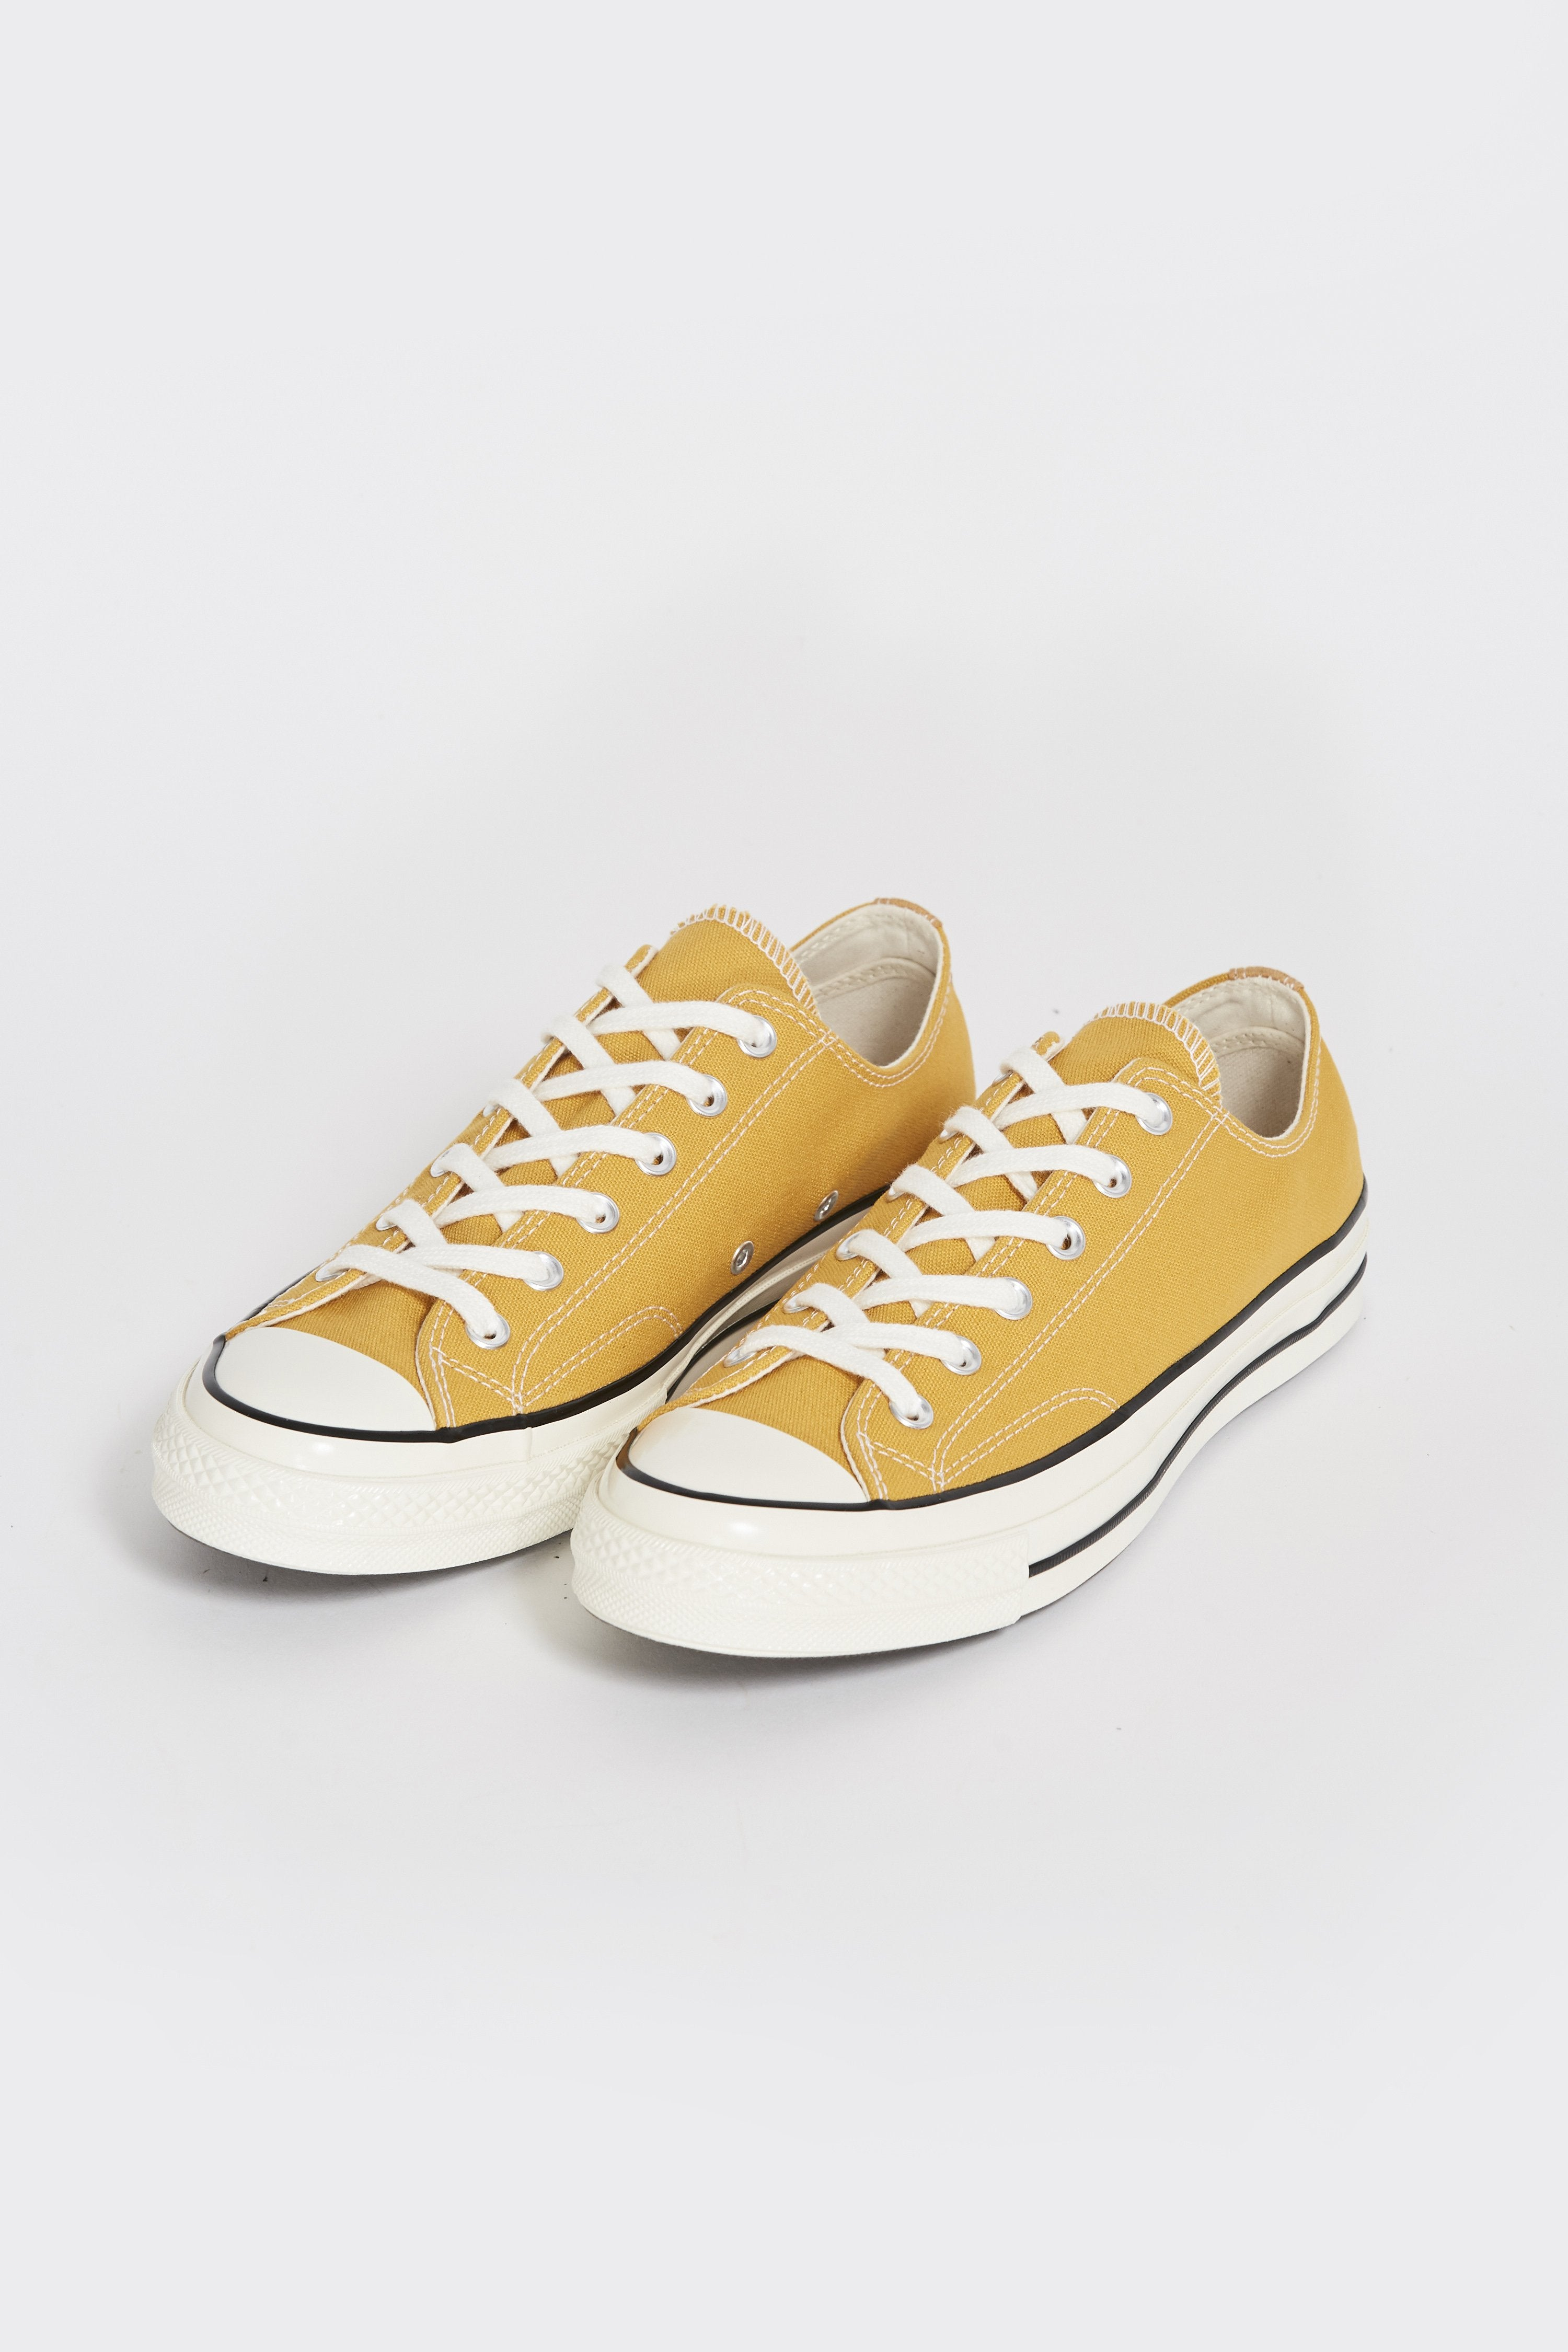 CONVERSE Chuck Taylor 1970S Low . Sunflower Yellow